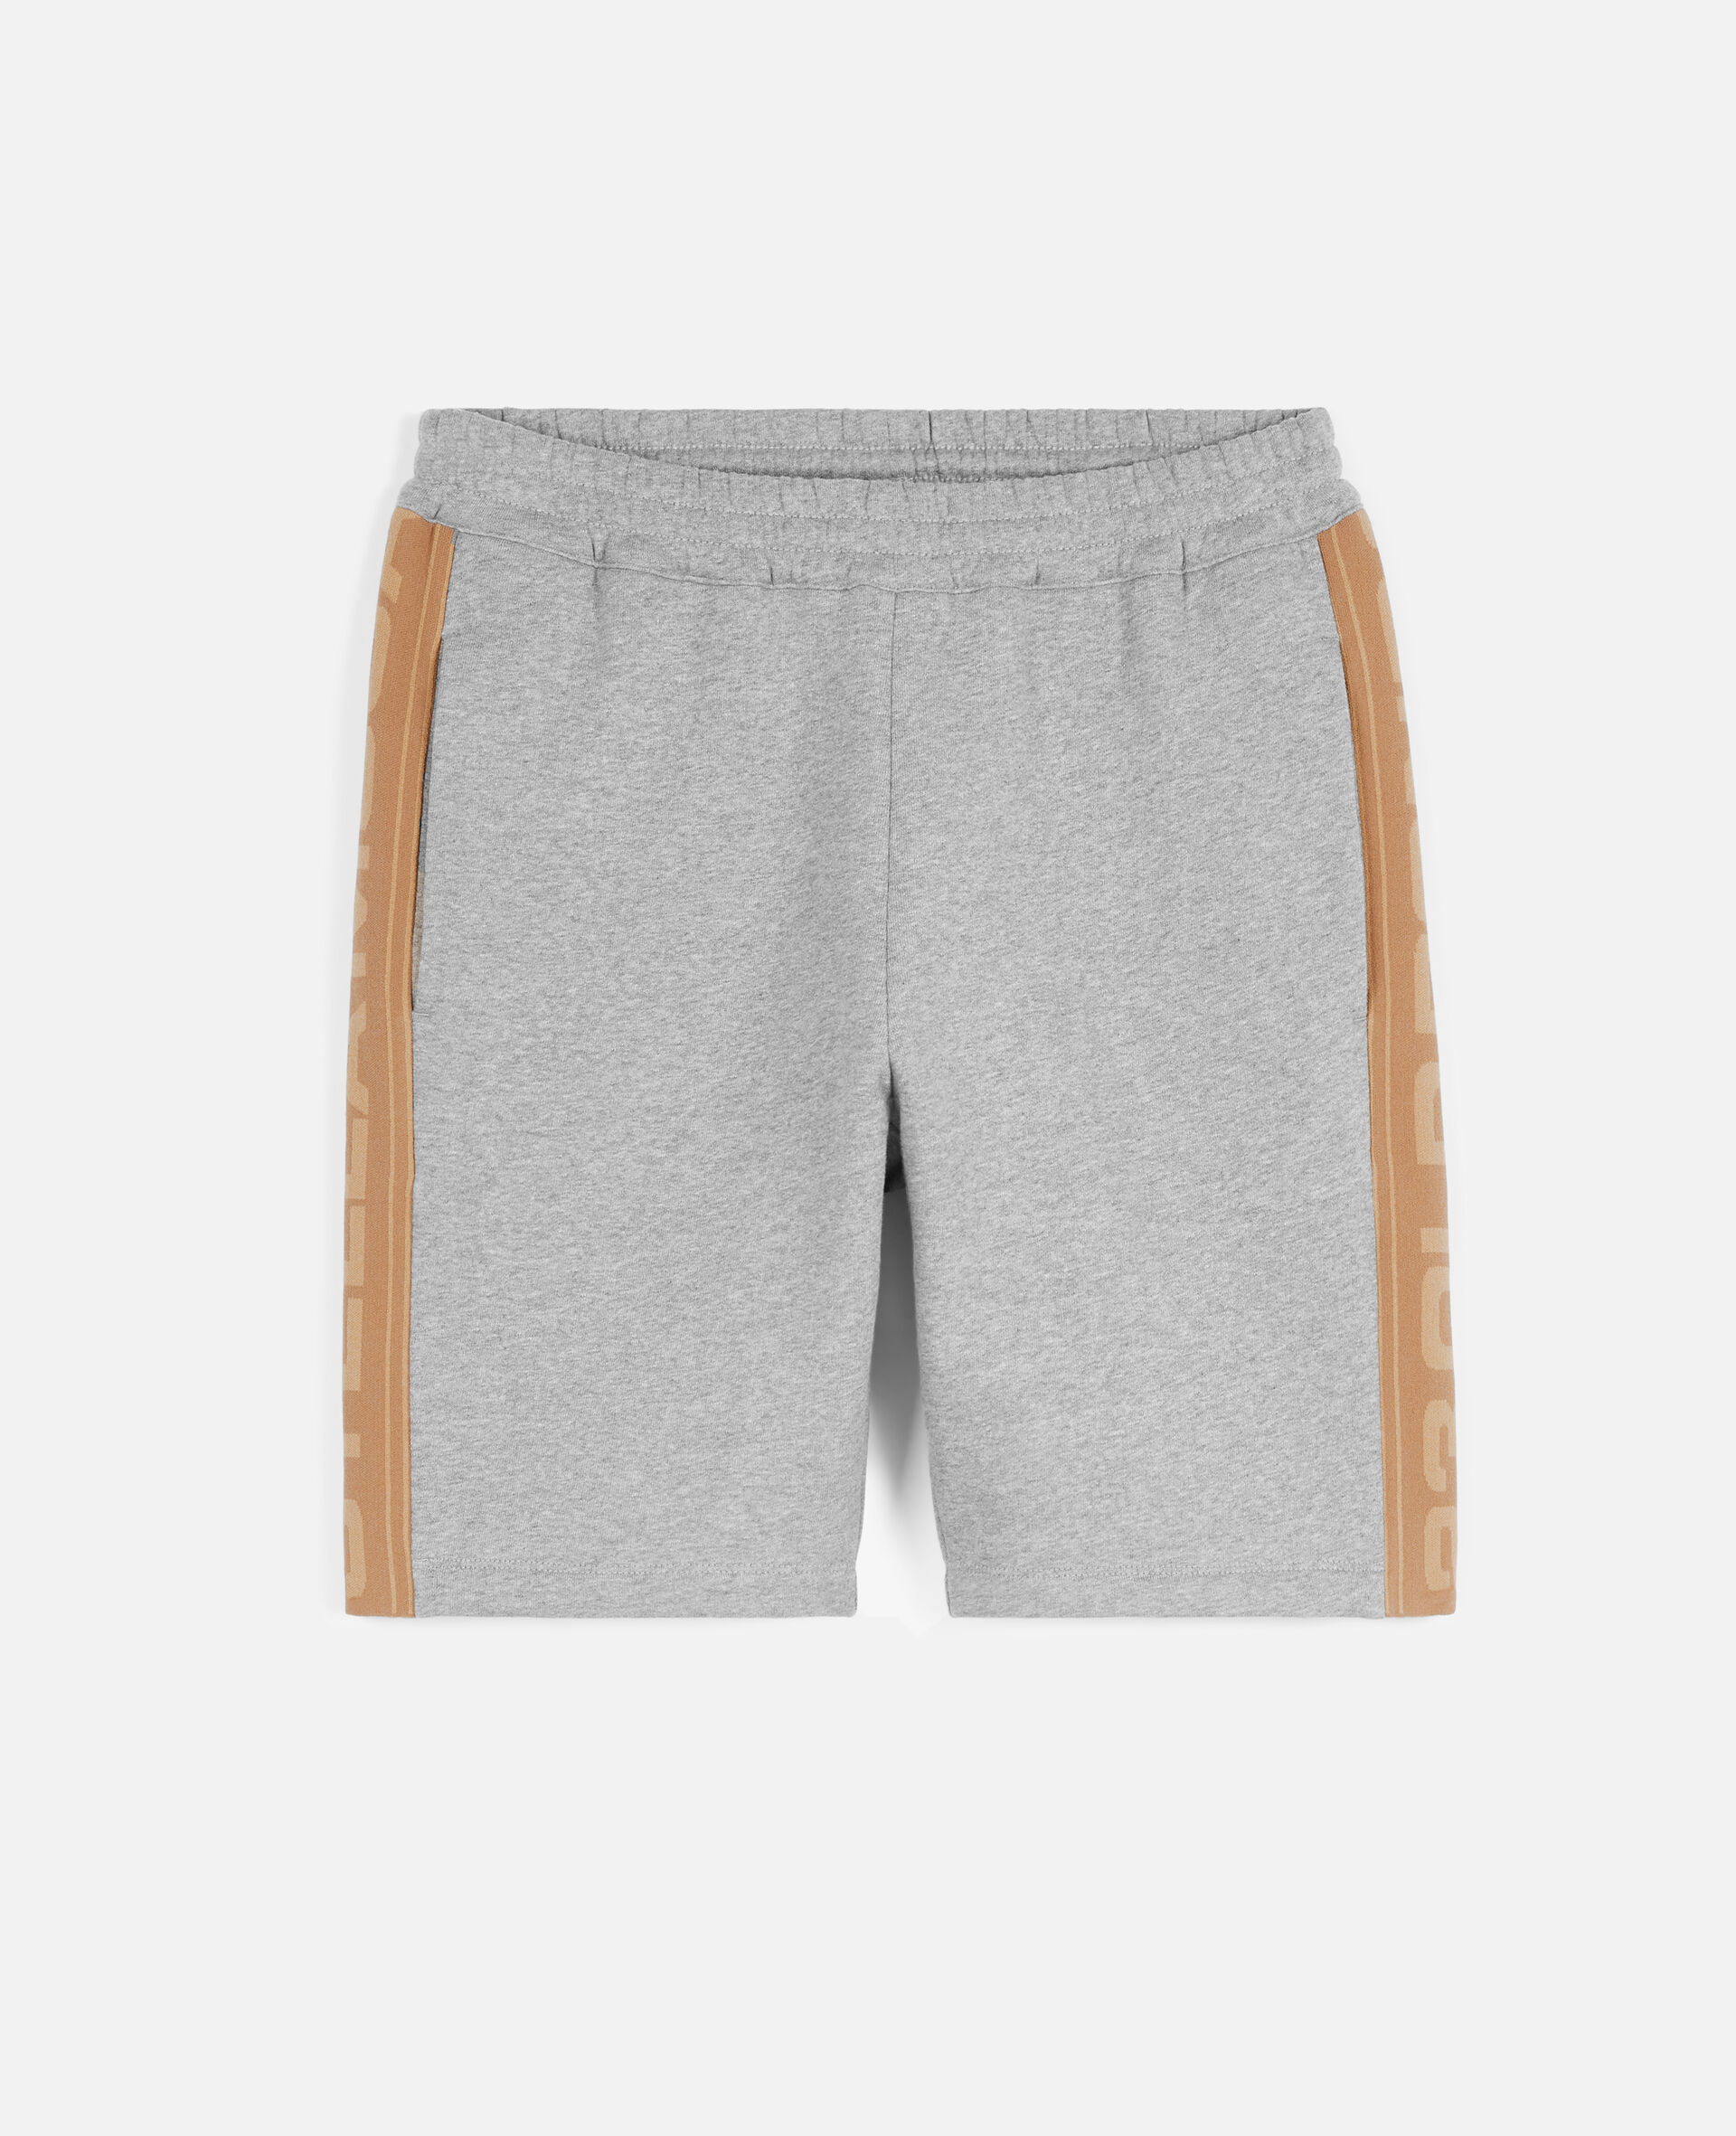 23 OBS Knitted Shorts -Grey-large image number 0